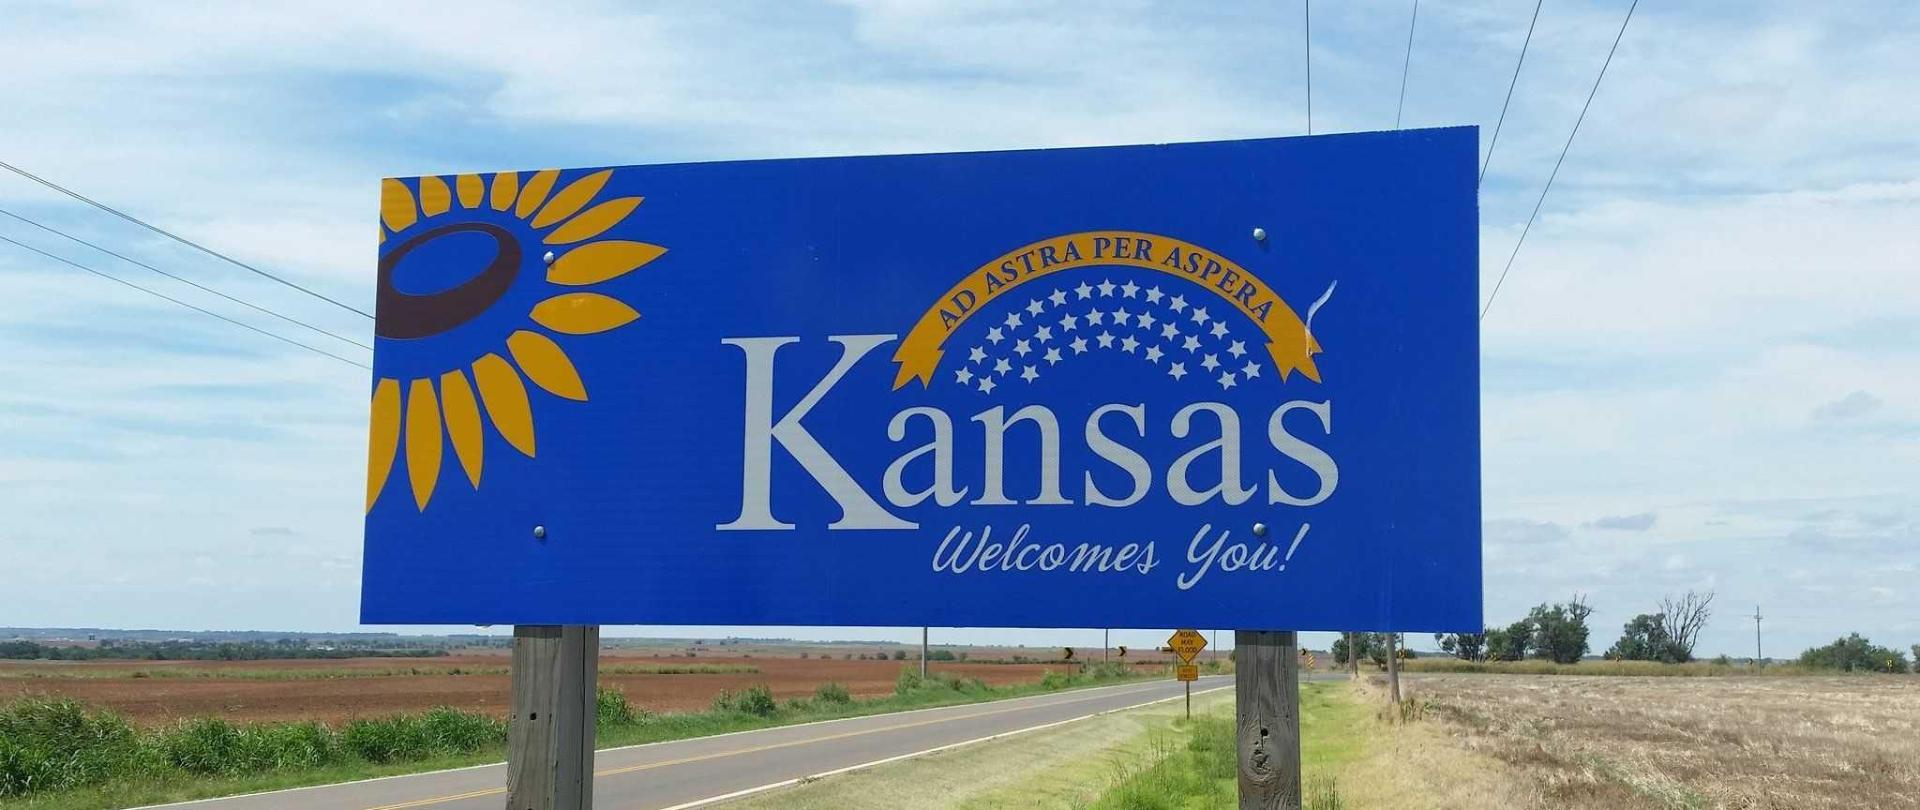 kansas-welcomes-you.jpg